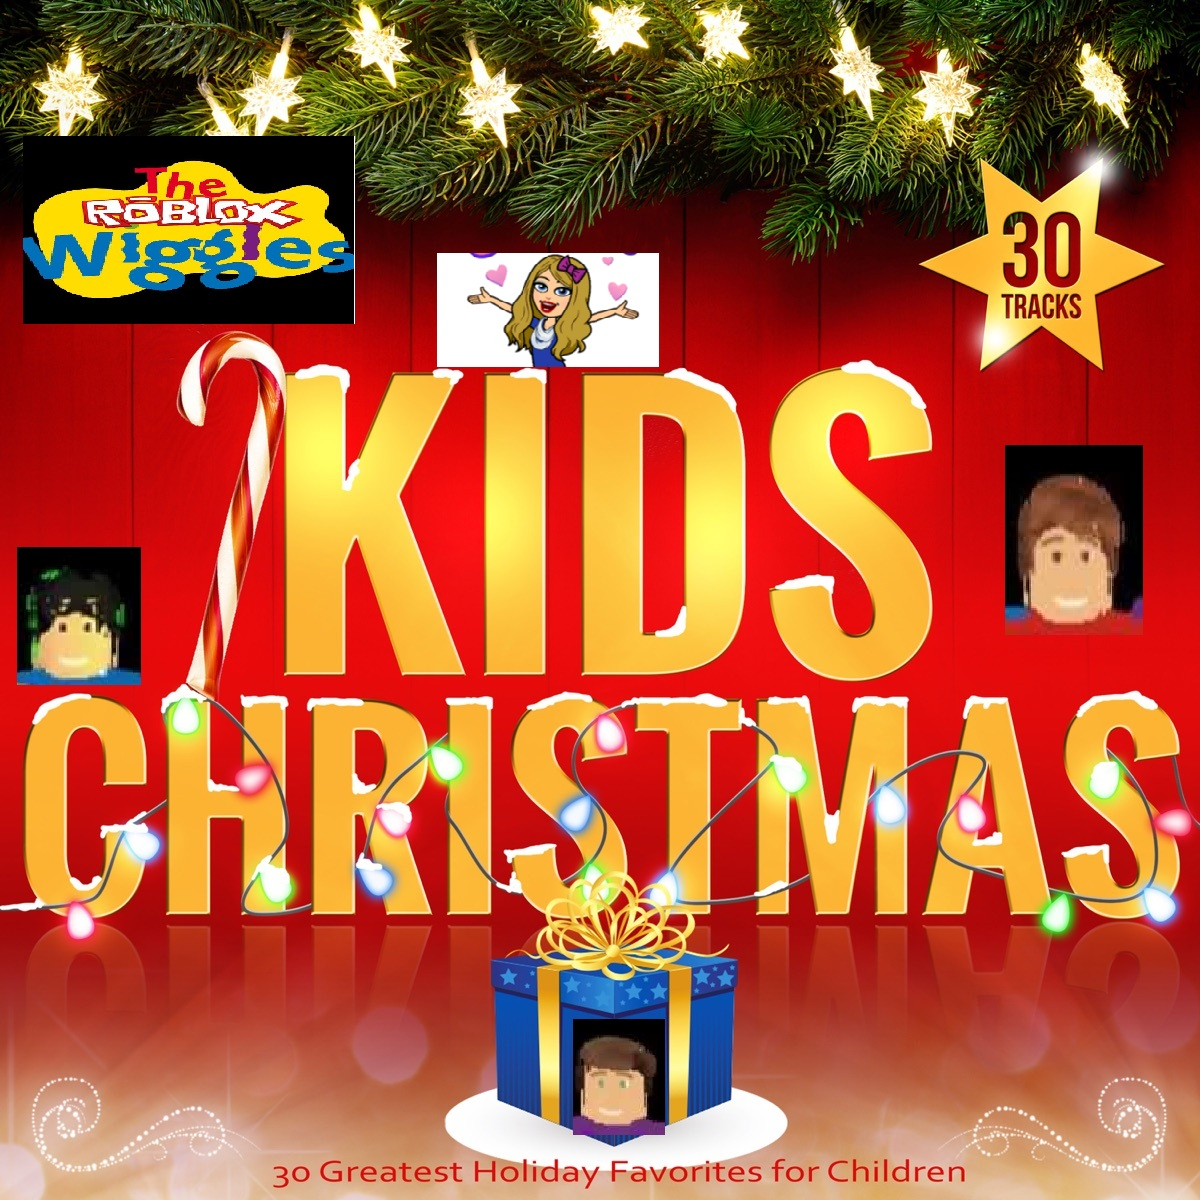 New Christmas Albums Coming Out In 2019 Kids Christmas | The Roblox Wiggles Wiki | FANDOM powered by Wikia